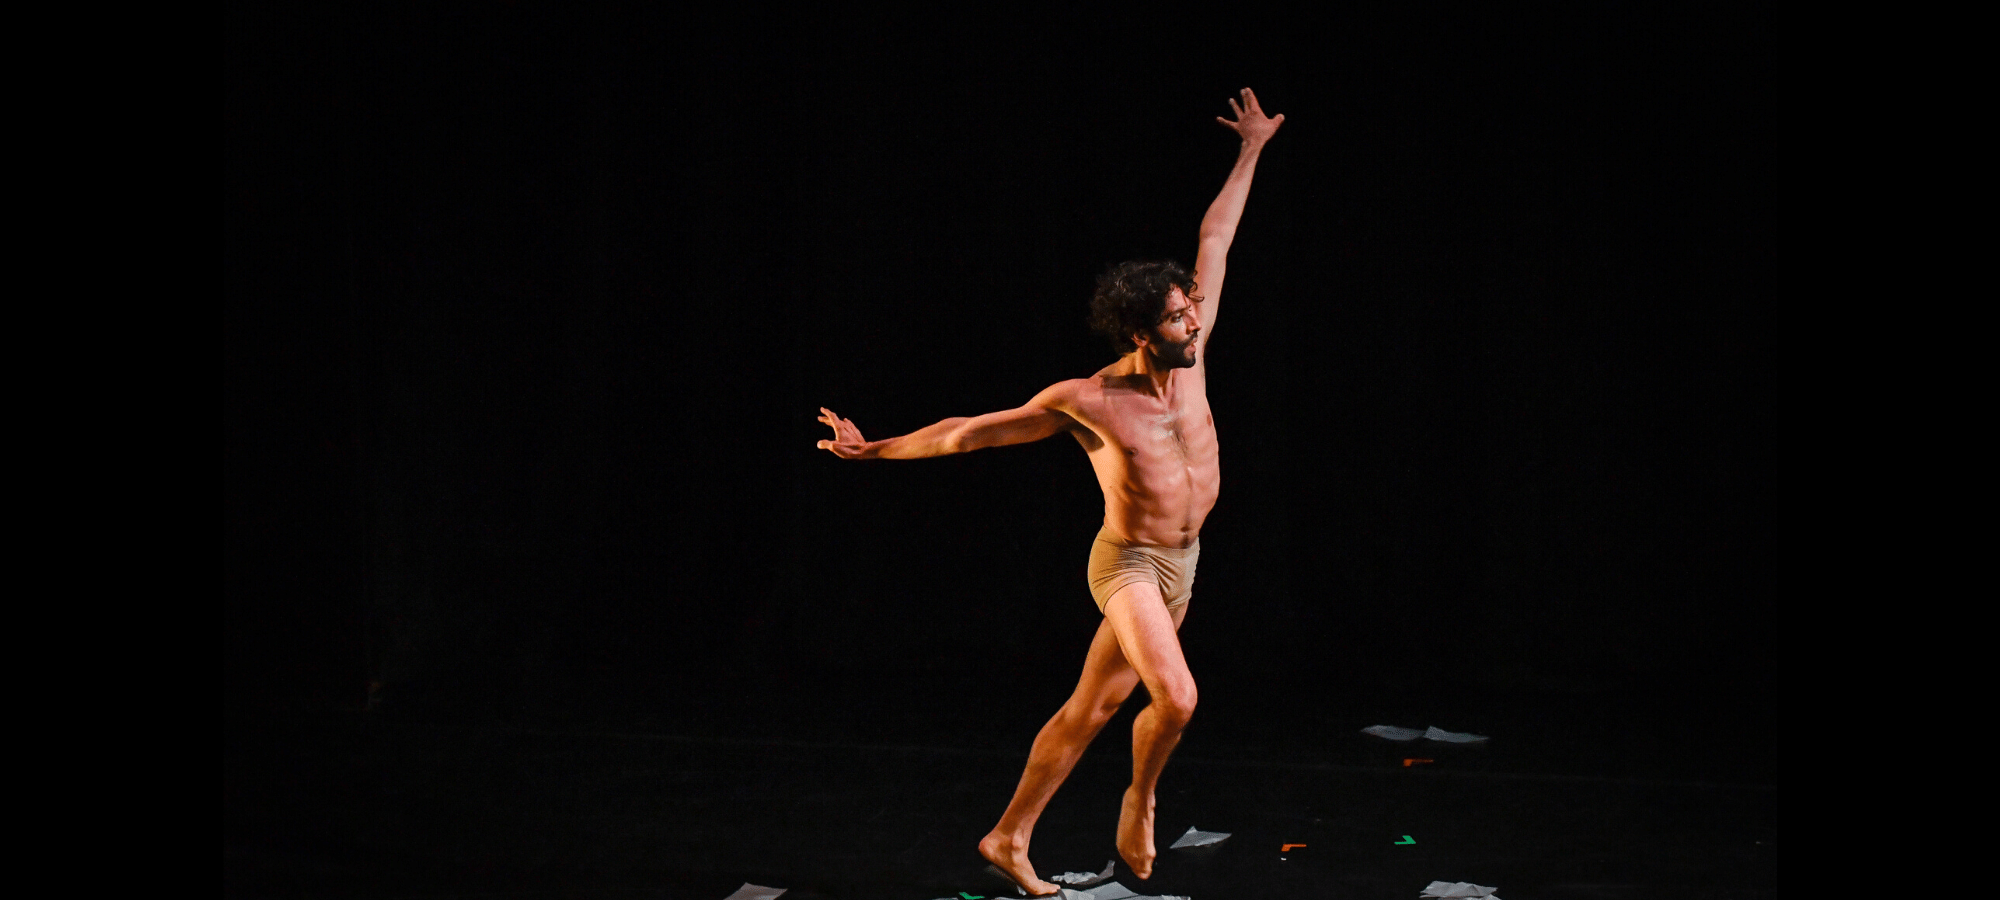 A dancer wearing light coloured shorts stands amidst book pages o the floor, stretching his arms up